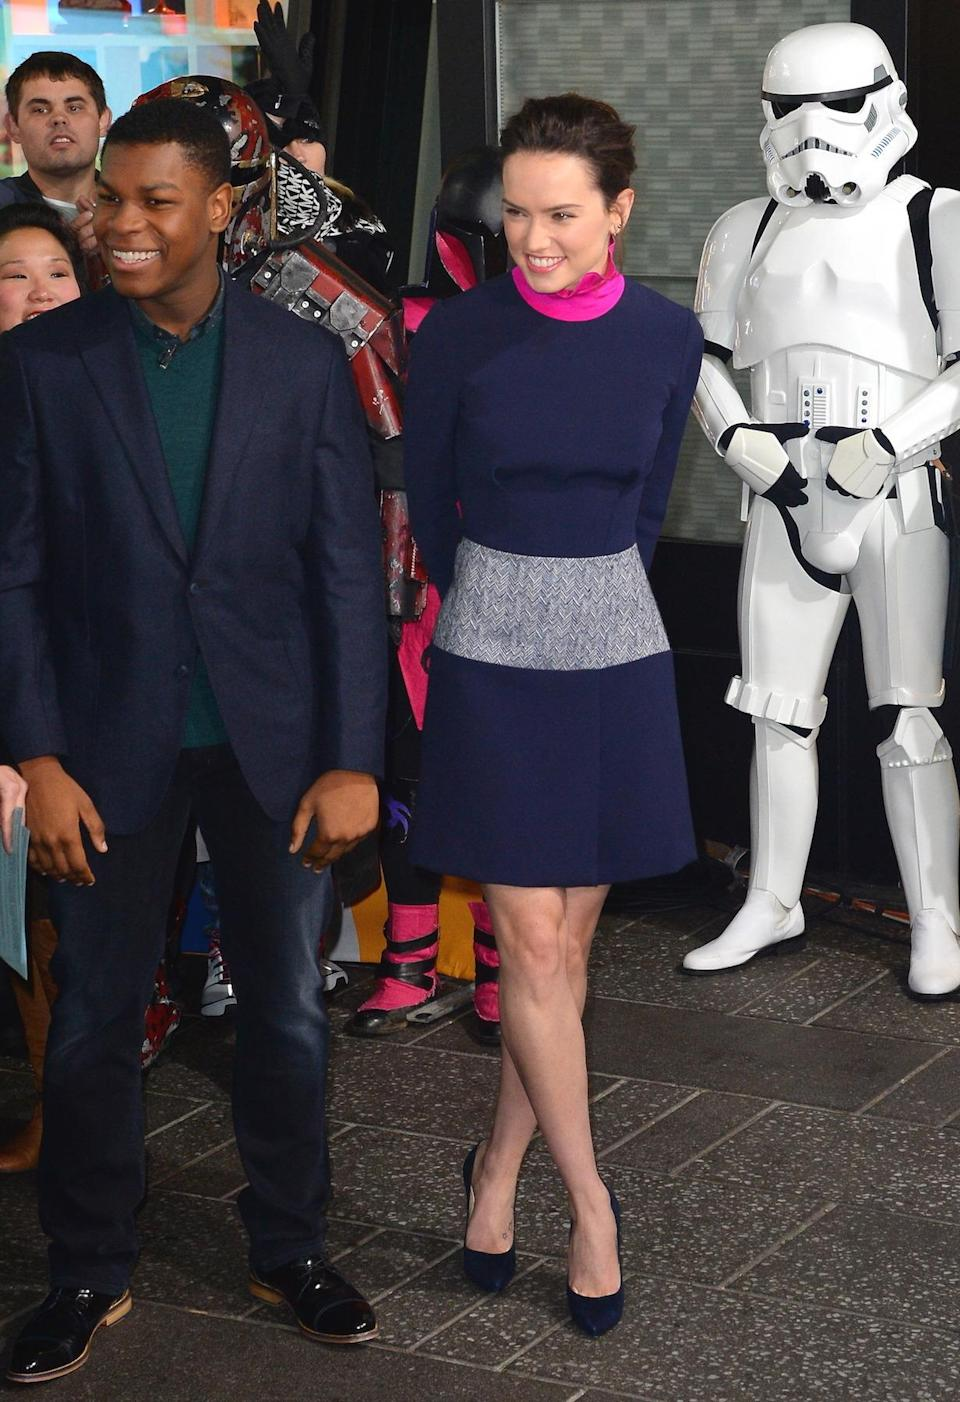 <p>Ridley's navy, grey, and shocking pink dress brought the most color to her tour so far.</p><p><i>(Photo: Getty Images)</i></p>